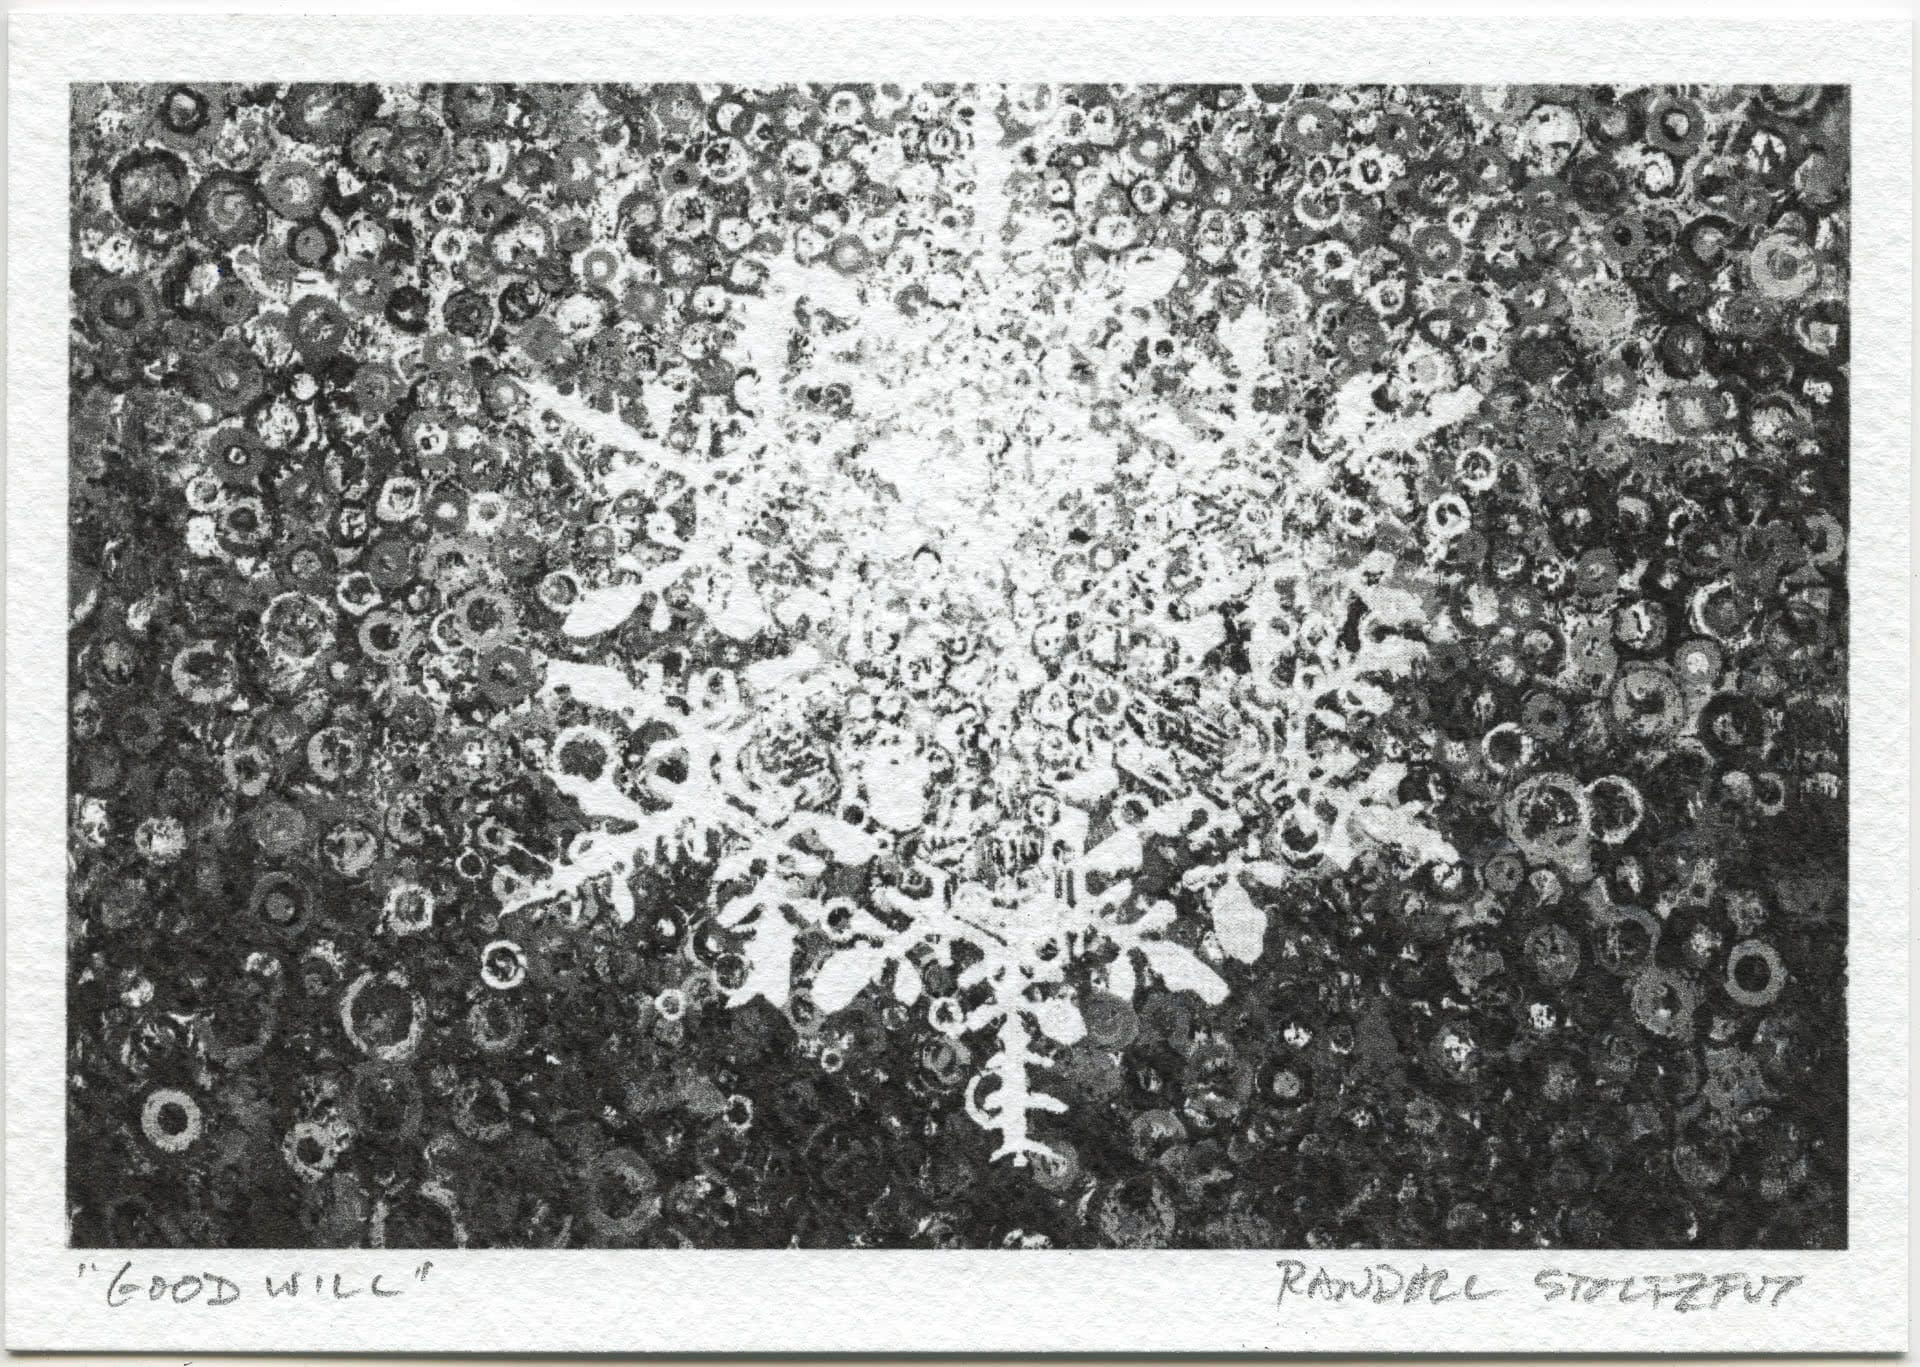 Monochrome print 'Good Will' signed by artist Randall Stoltzfus